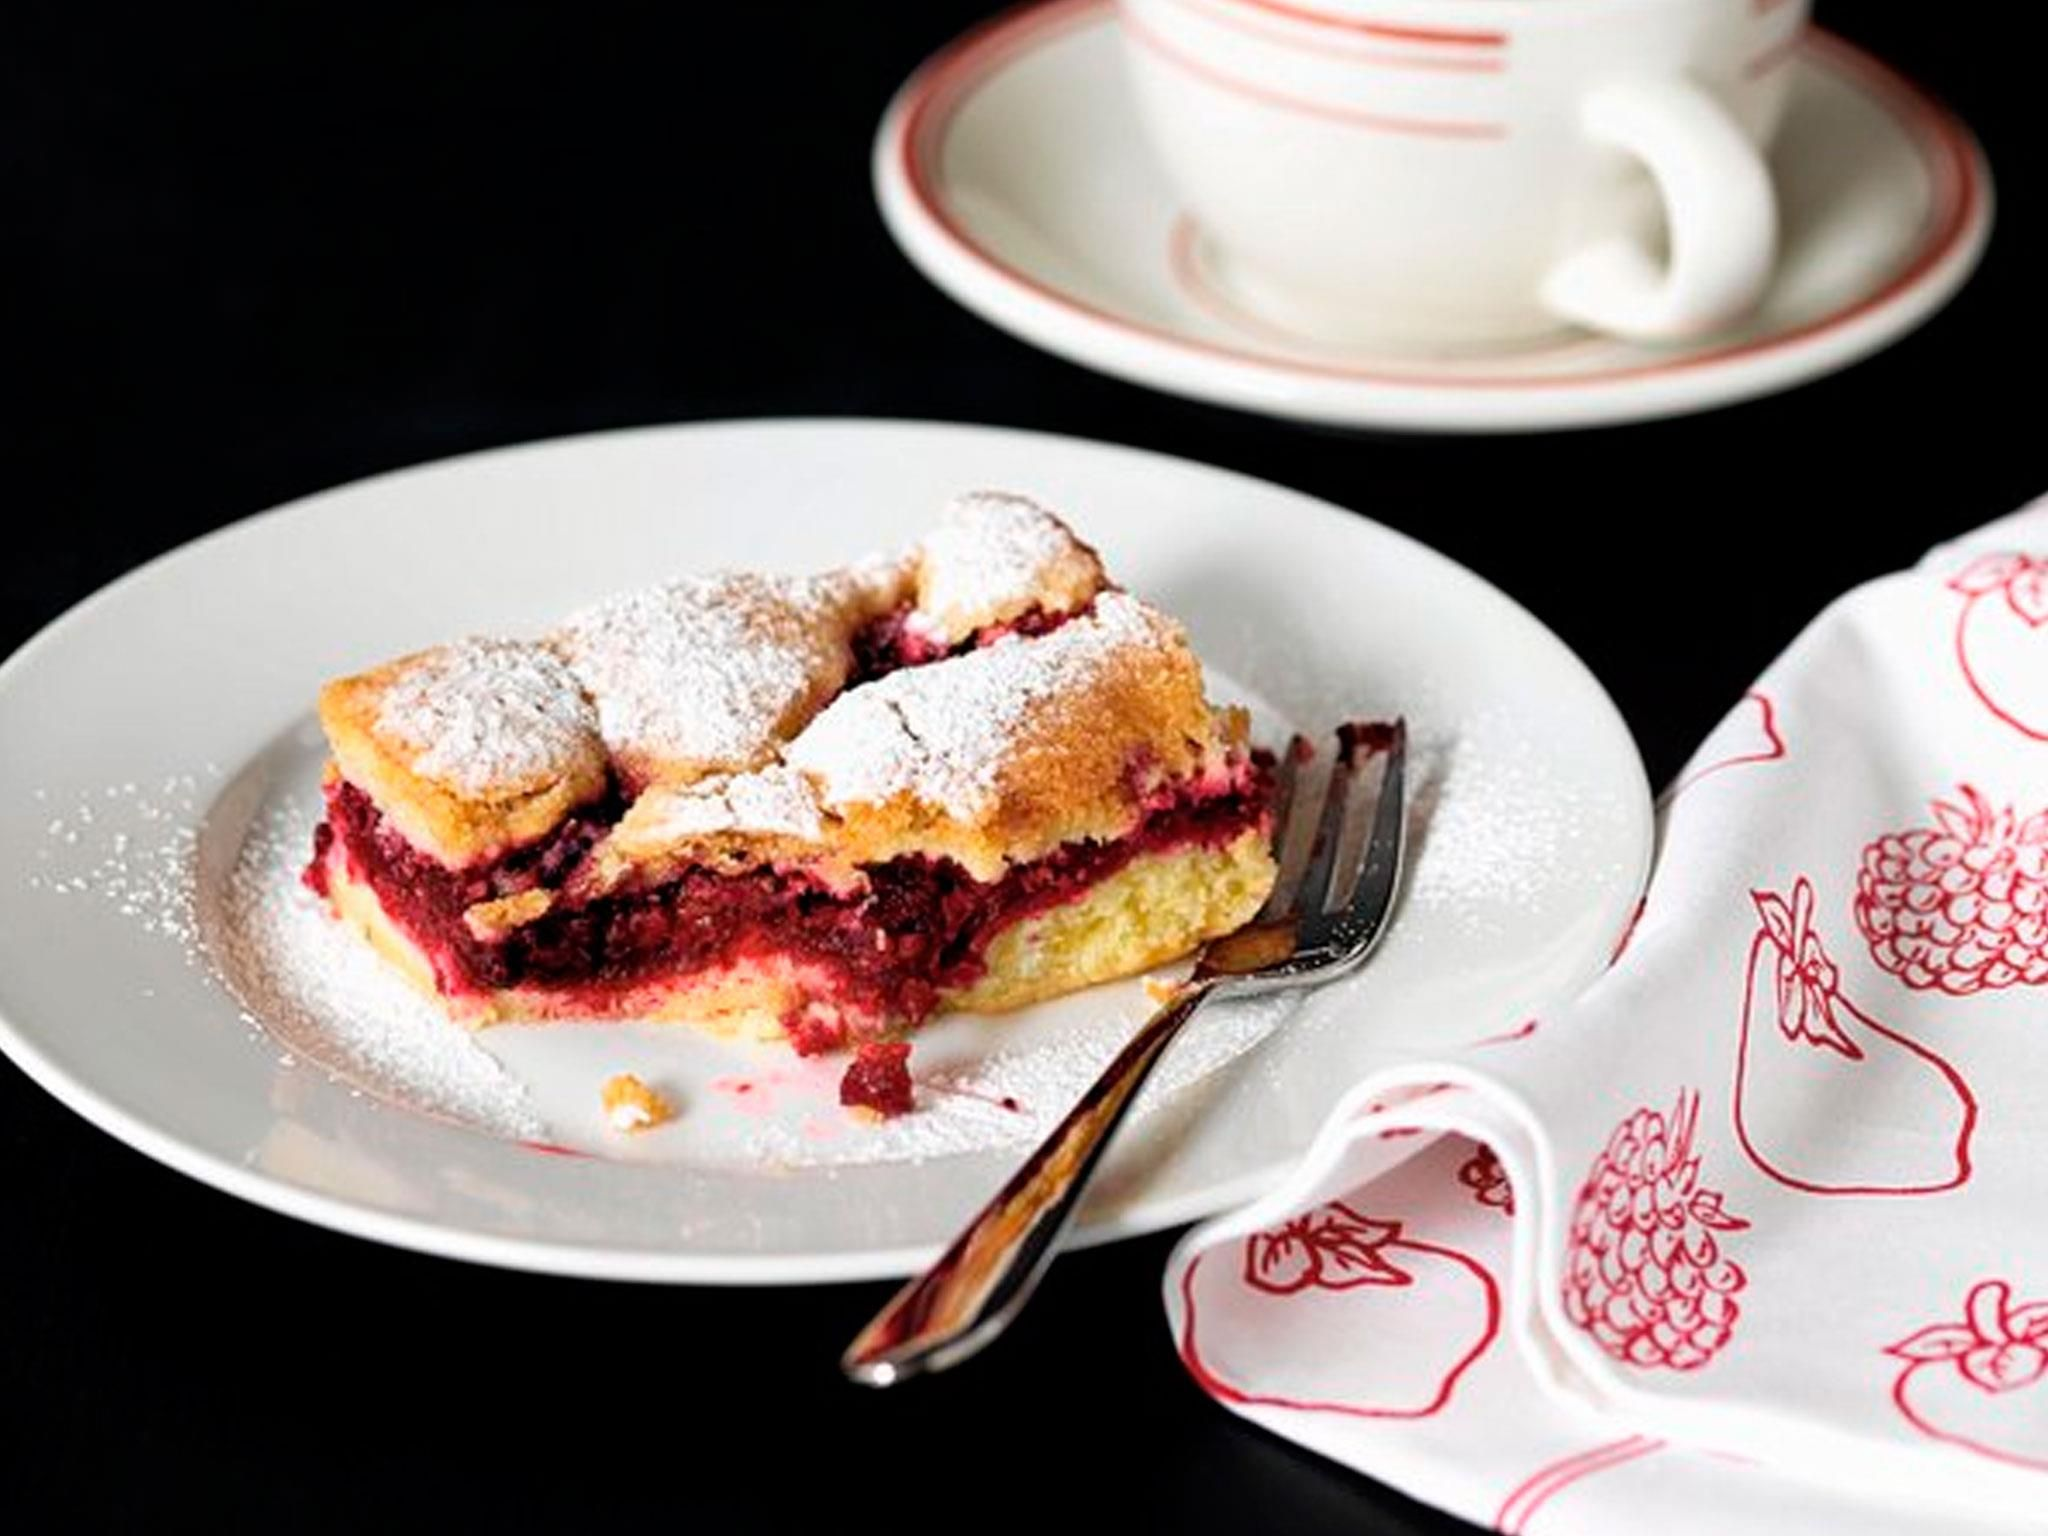 Perfect enjoyed for afternoon tea, this delicious gluten